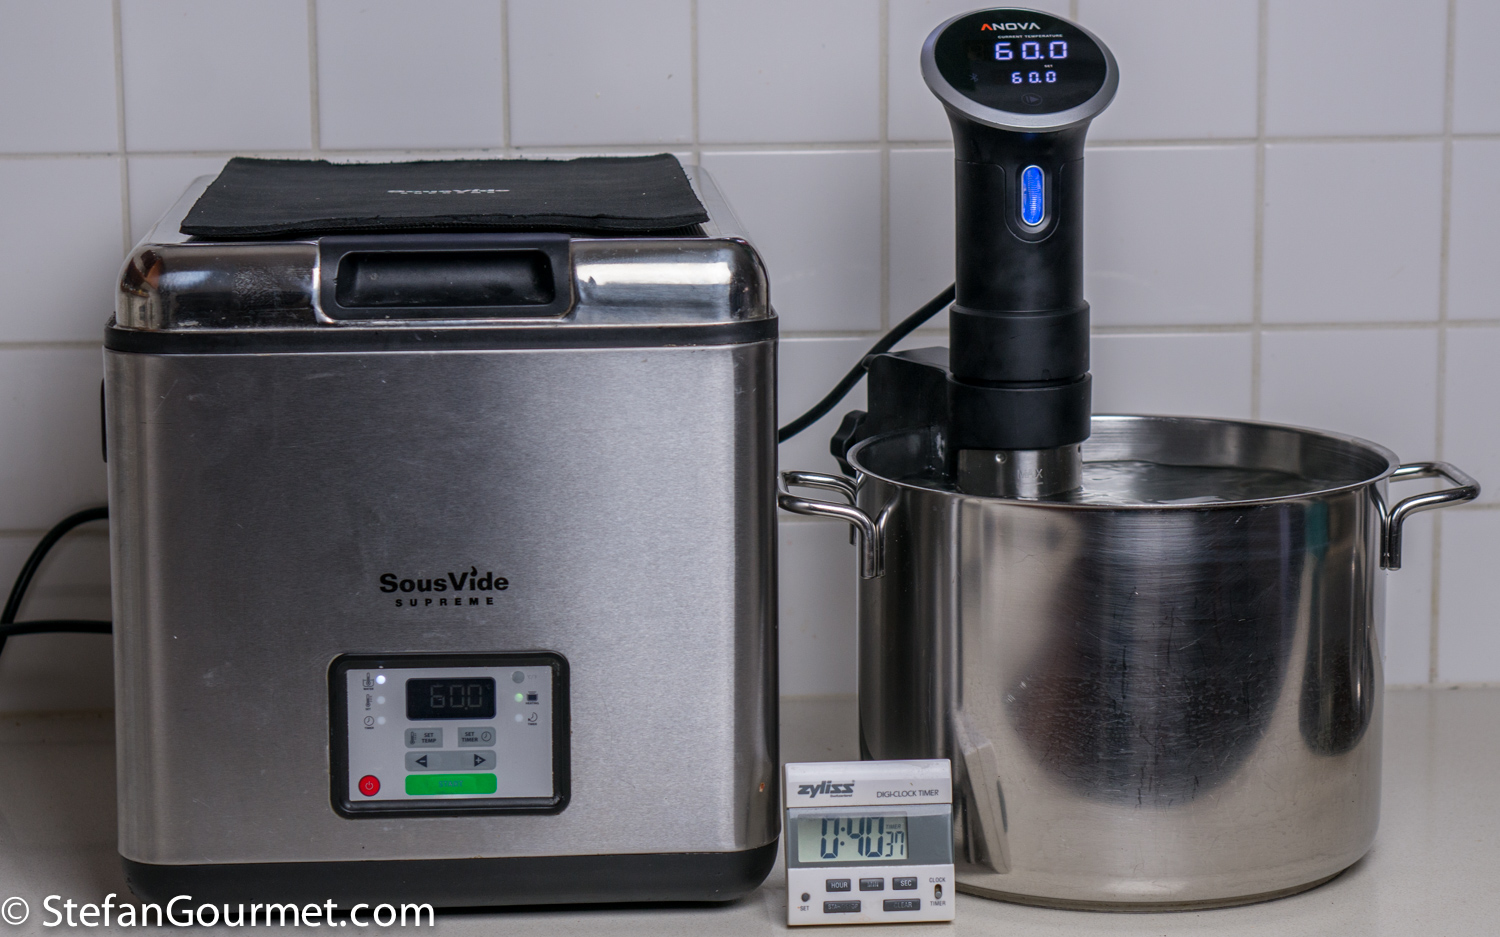 sous vide equipment review sousvide supreme vs anova precision cooker stefan 39 s gourmet blog. Black Bedroom Furniture Sets. Home Design Ideas